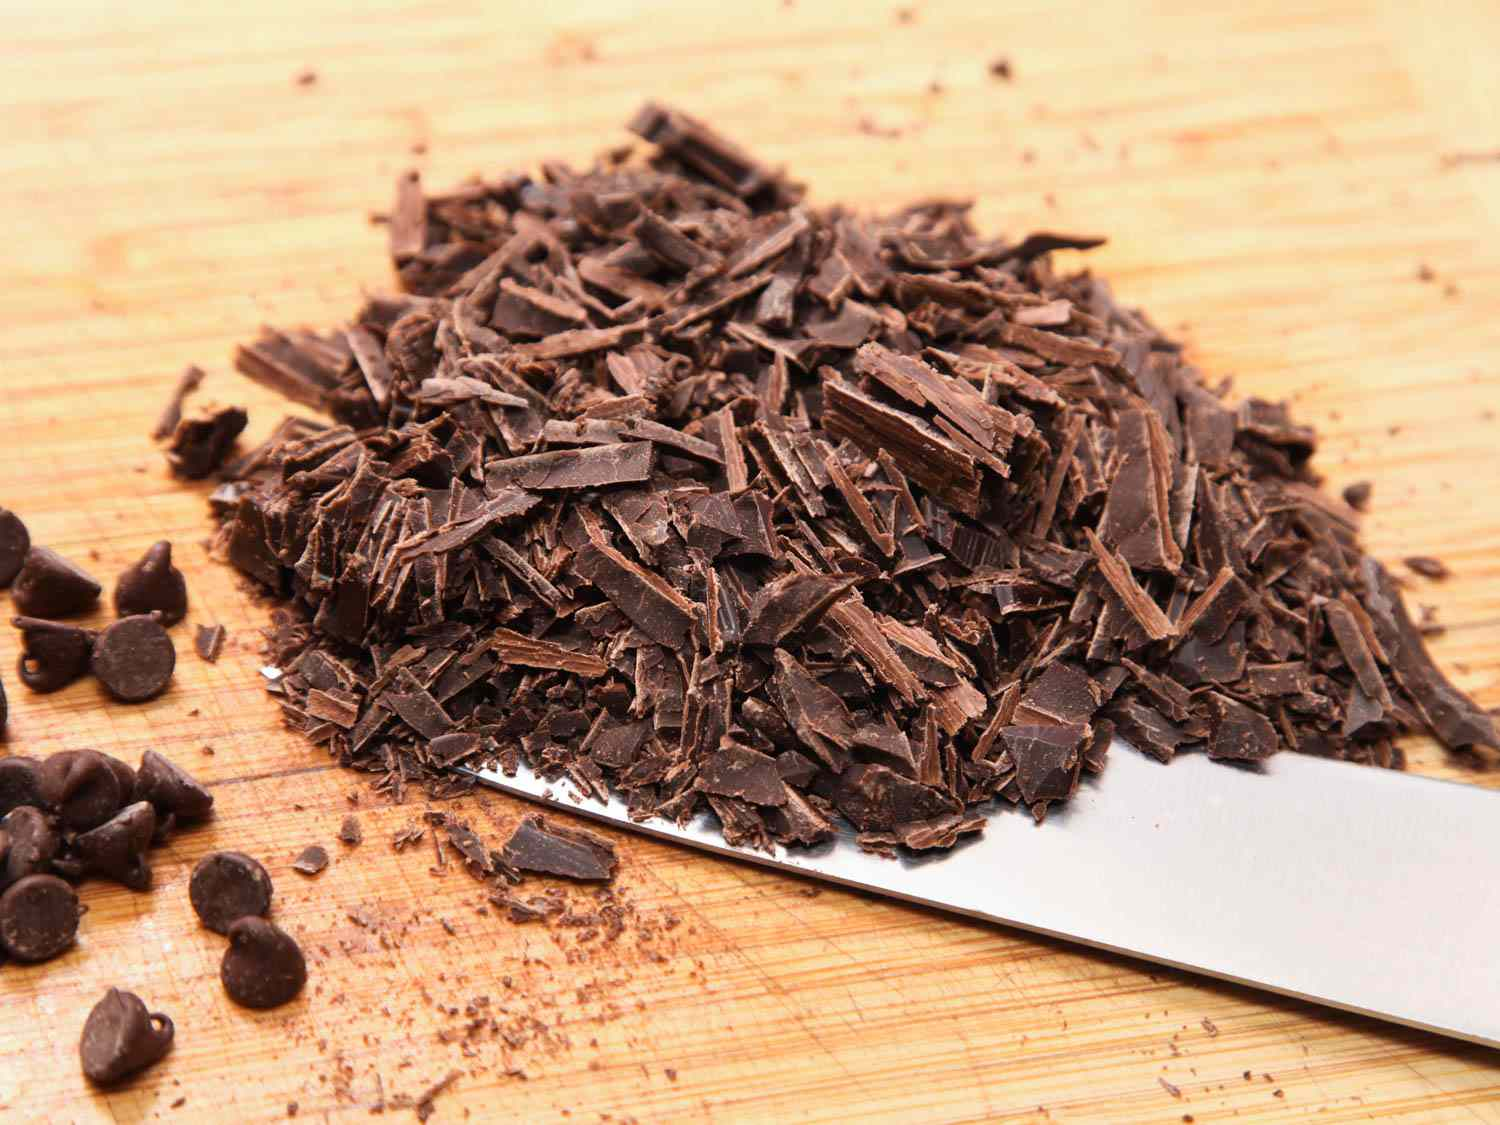 A pile of chopped chocolate on a cutting board next to a few chocolate chips.